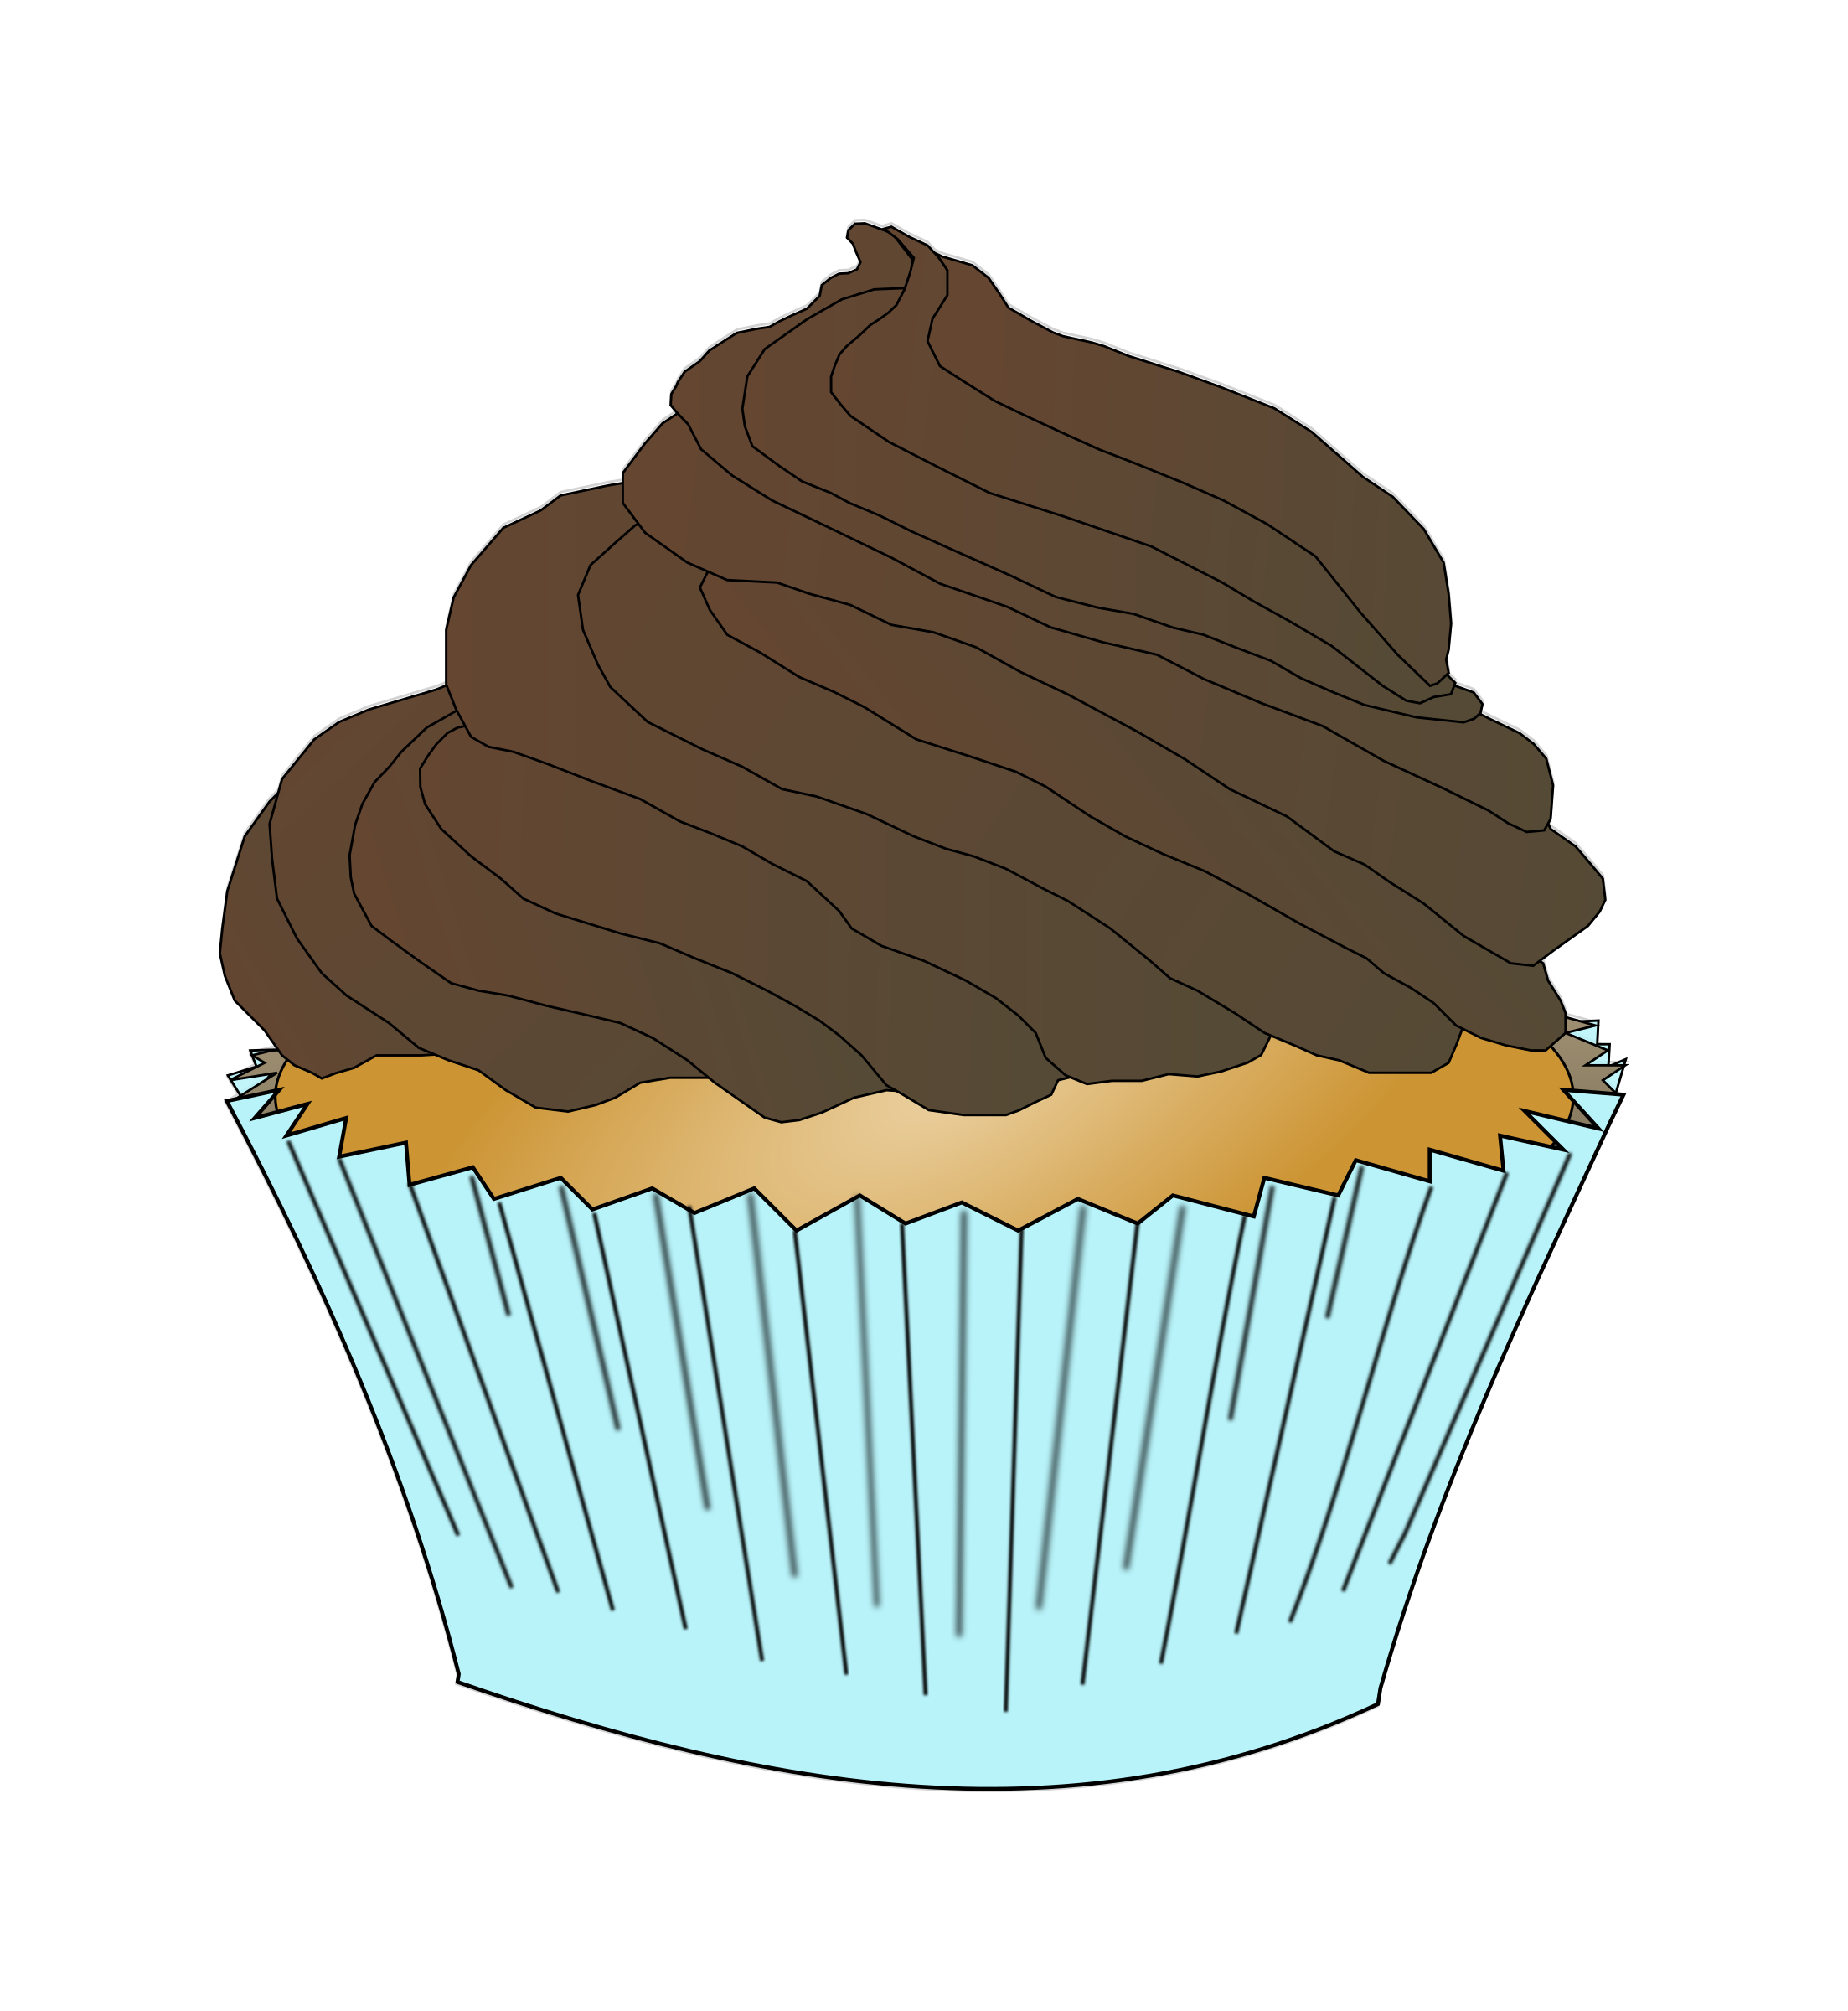 Frosting clipart chocolate cupcake Chocolate Frosting Clipart Cupcake Cupcake